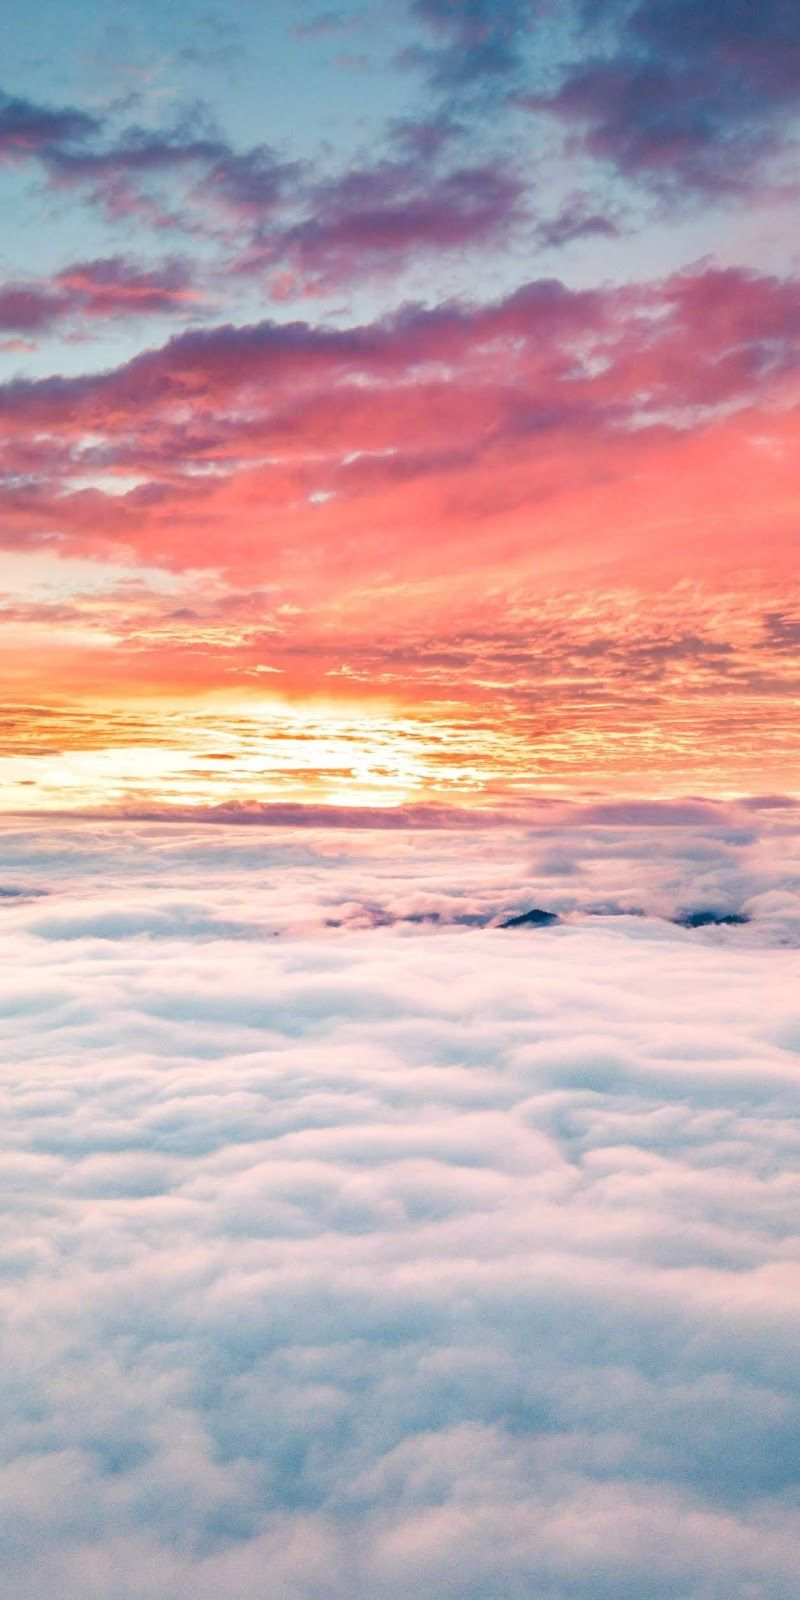 Cloudy Sunset Walllpaper Wallpaper Iphone Android Background Followme Sunset Wallpaper Beautiful Wallpapers Sky Aesthetic